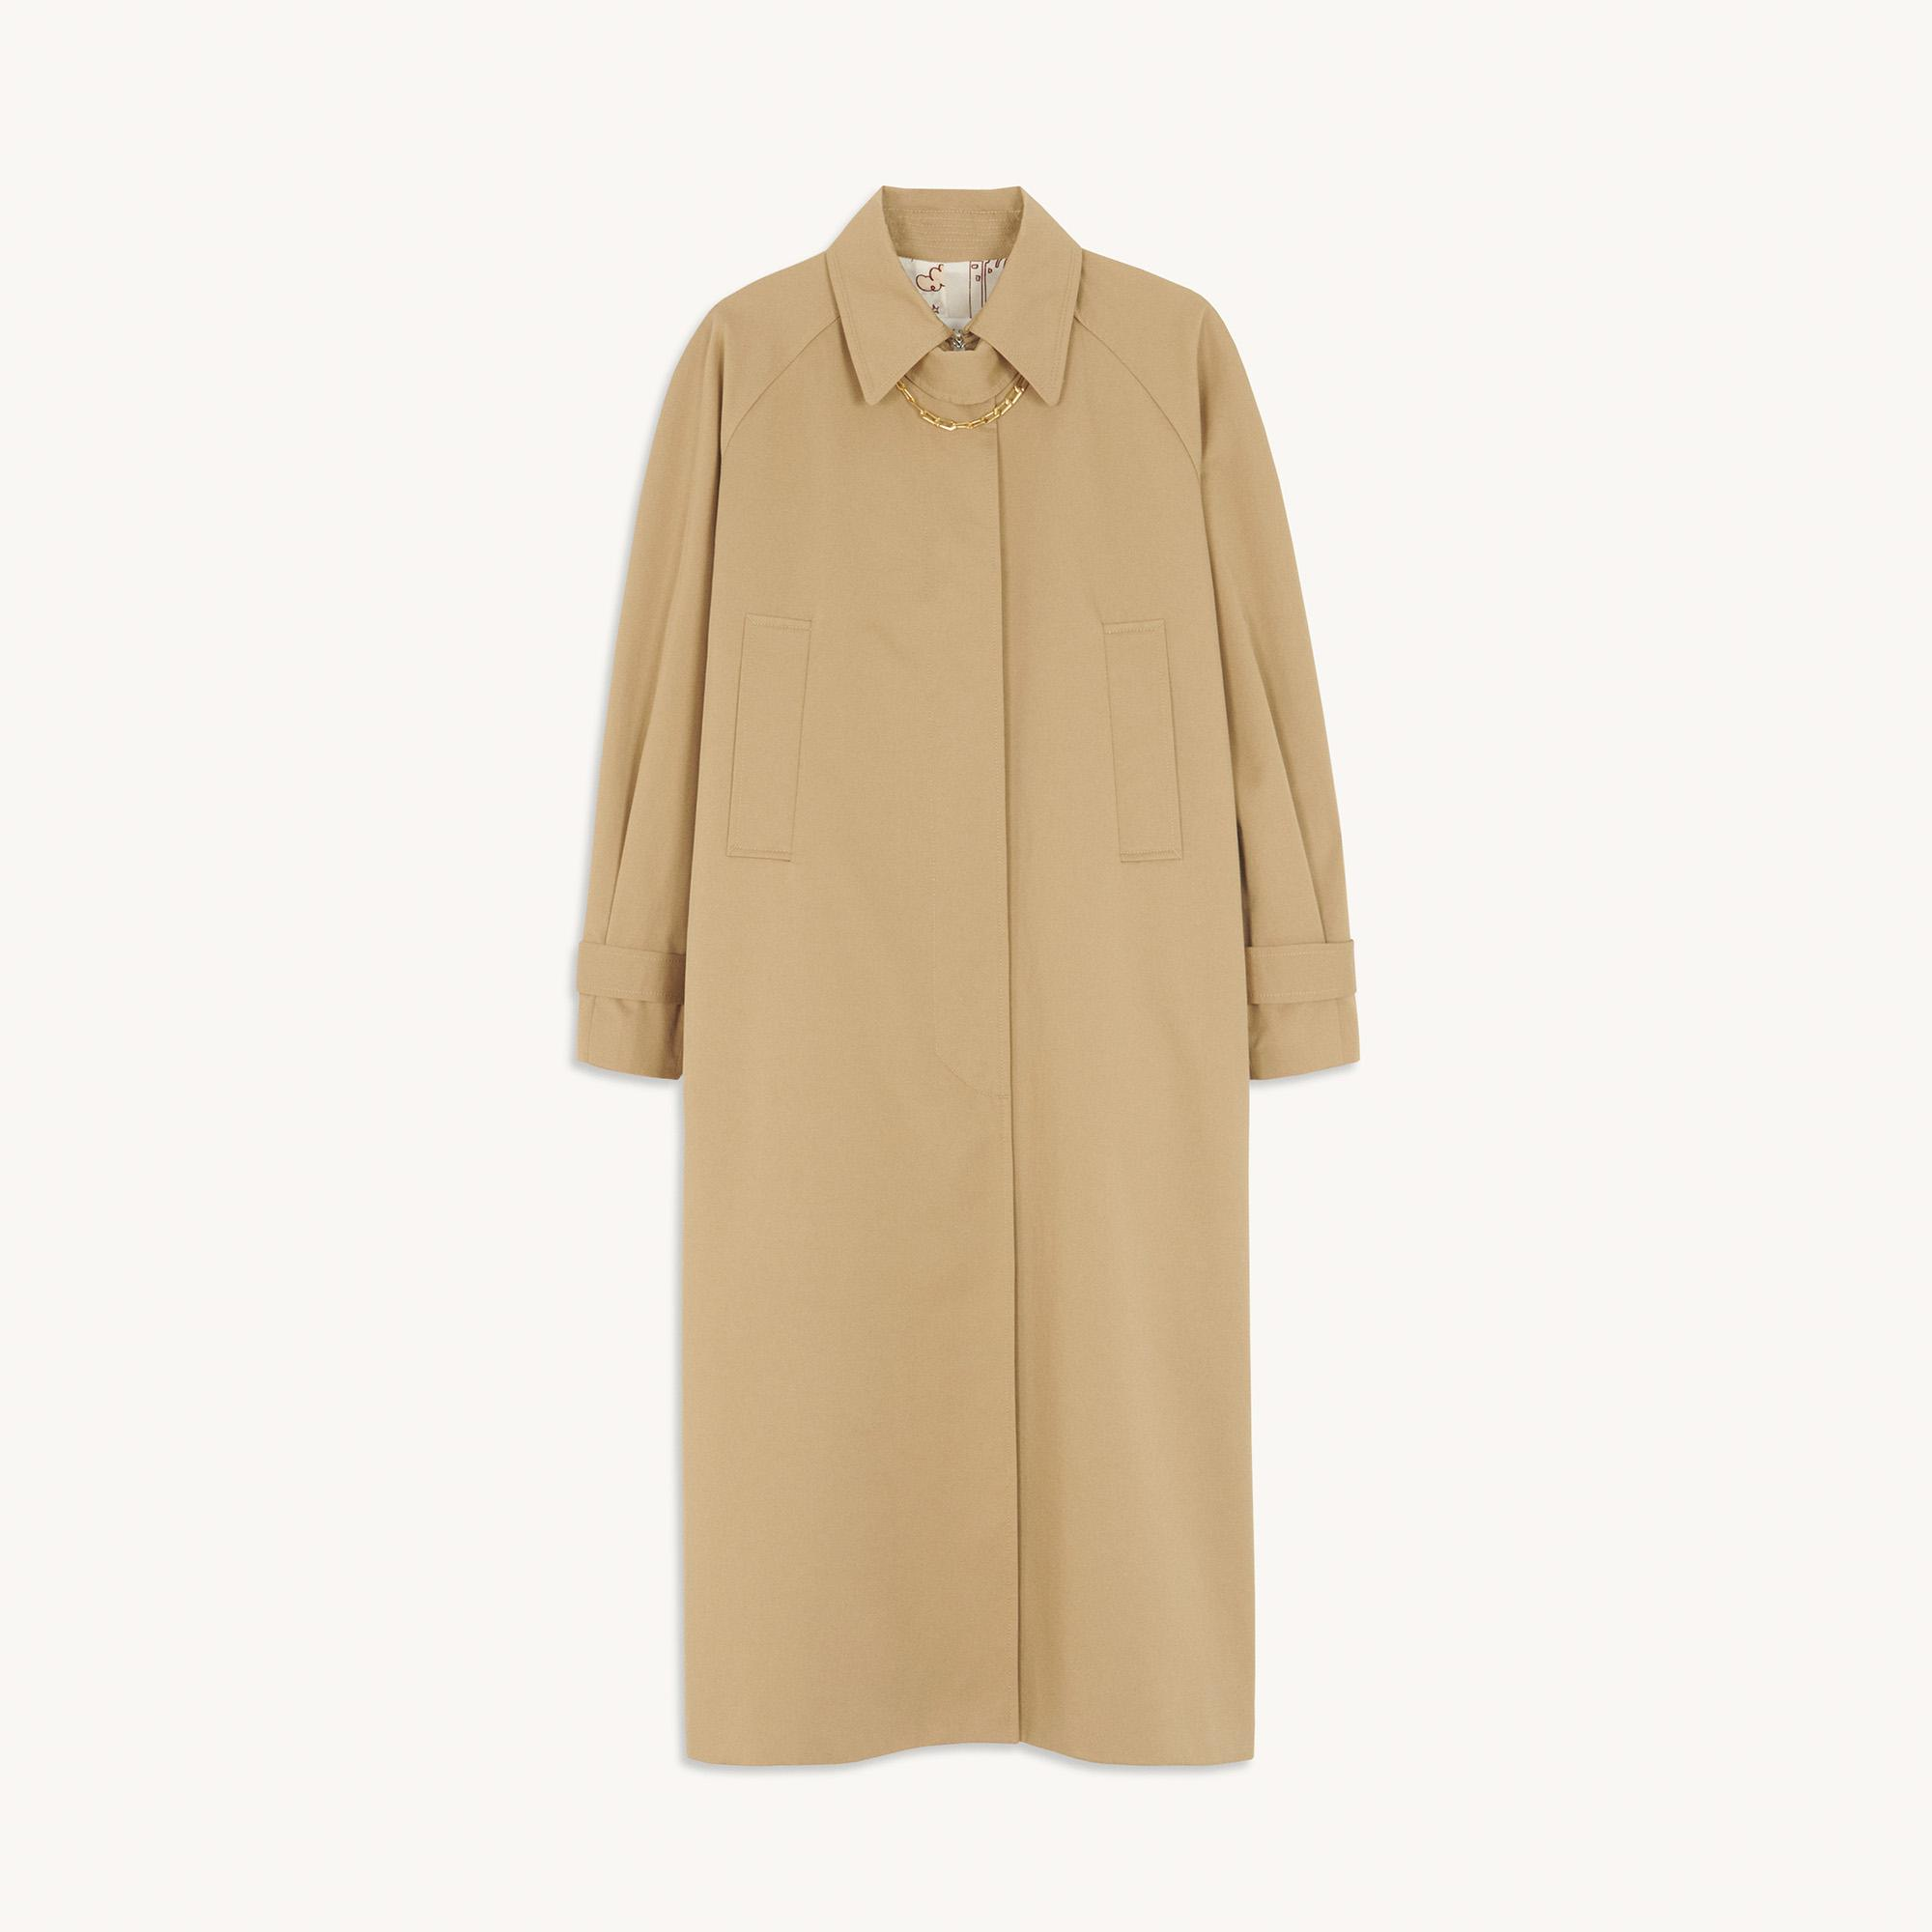 Cotton trench coat with detachable chain 5